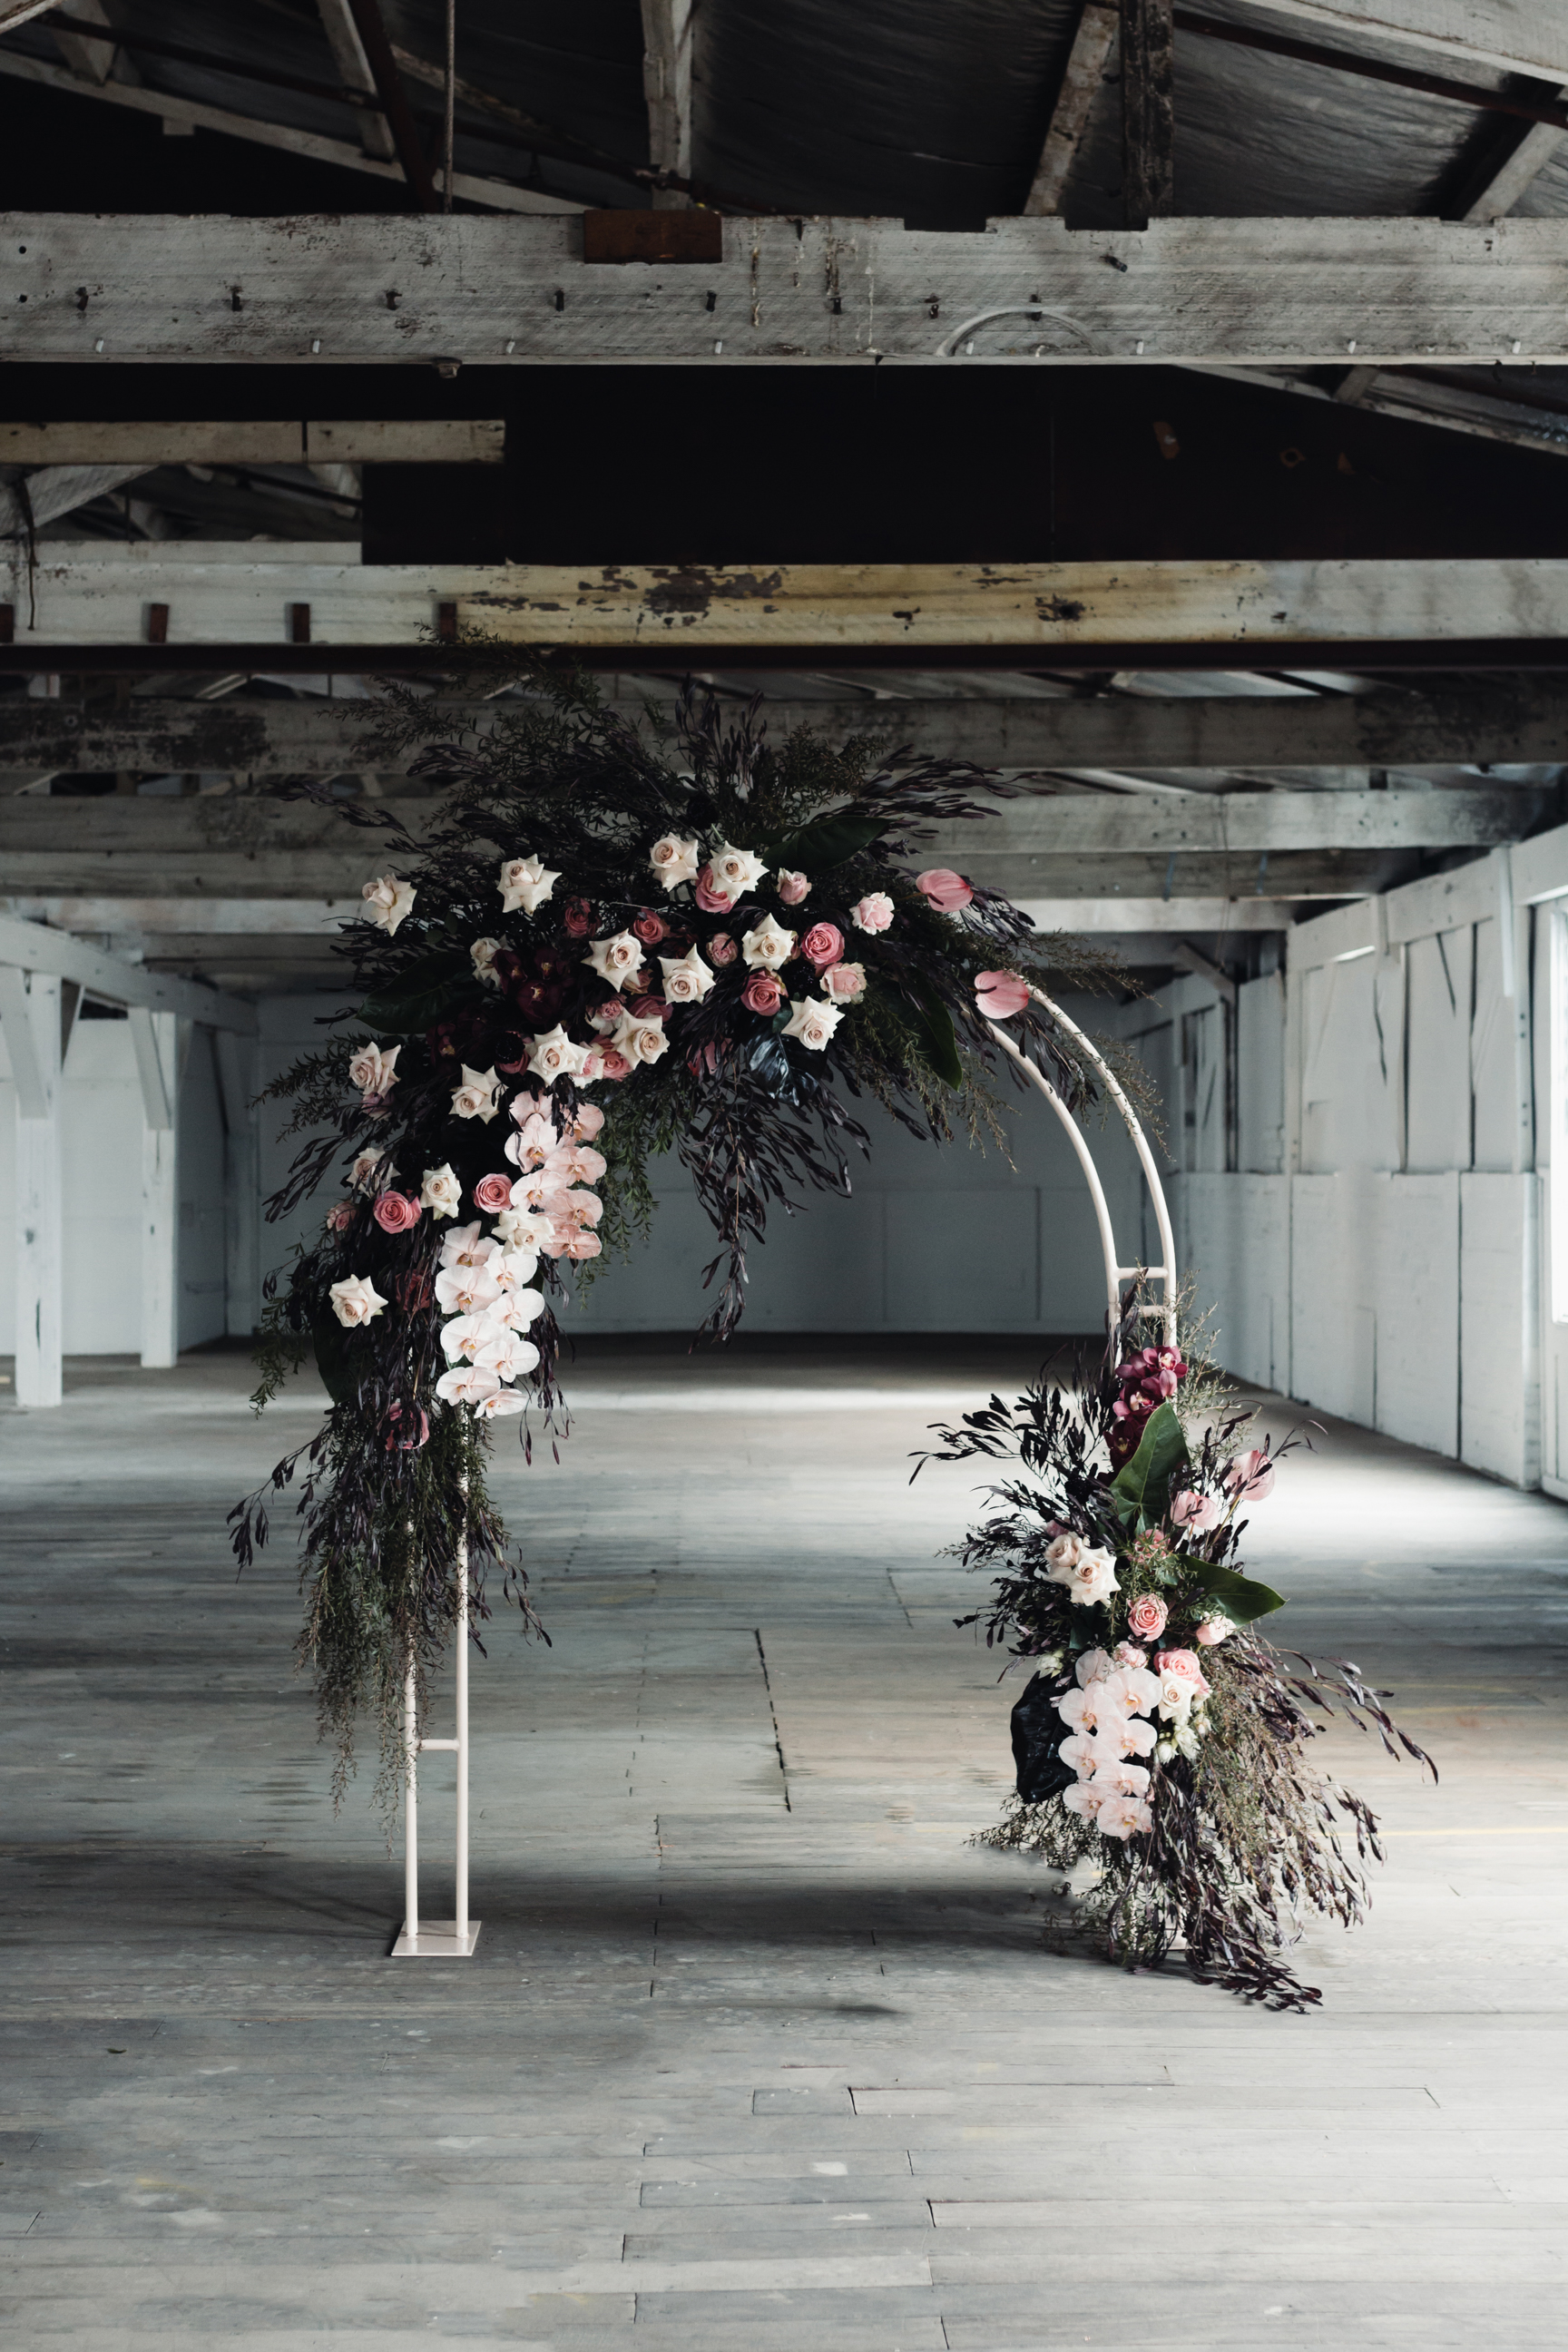 Photography - Bianca Virtue @biancavirtue Venue - Gather and Tailor @gatherandtailor Florals - Wild Flos @wildflos Stationery, Signage and Styling - @stateofreveriestudio